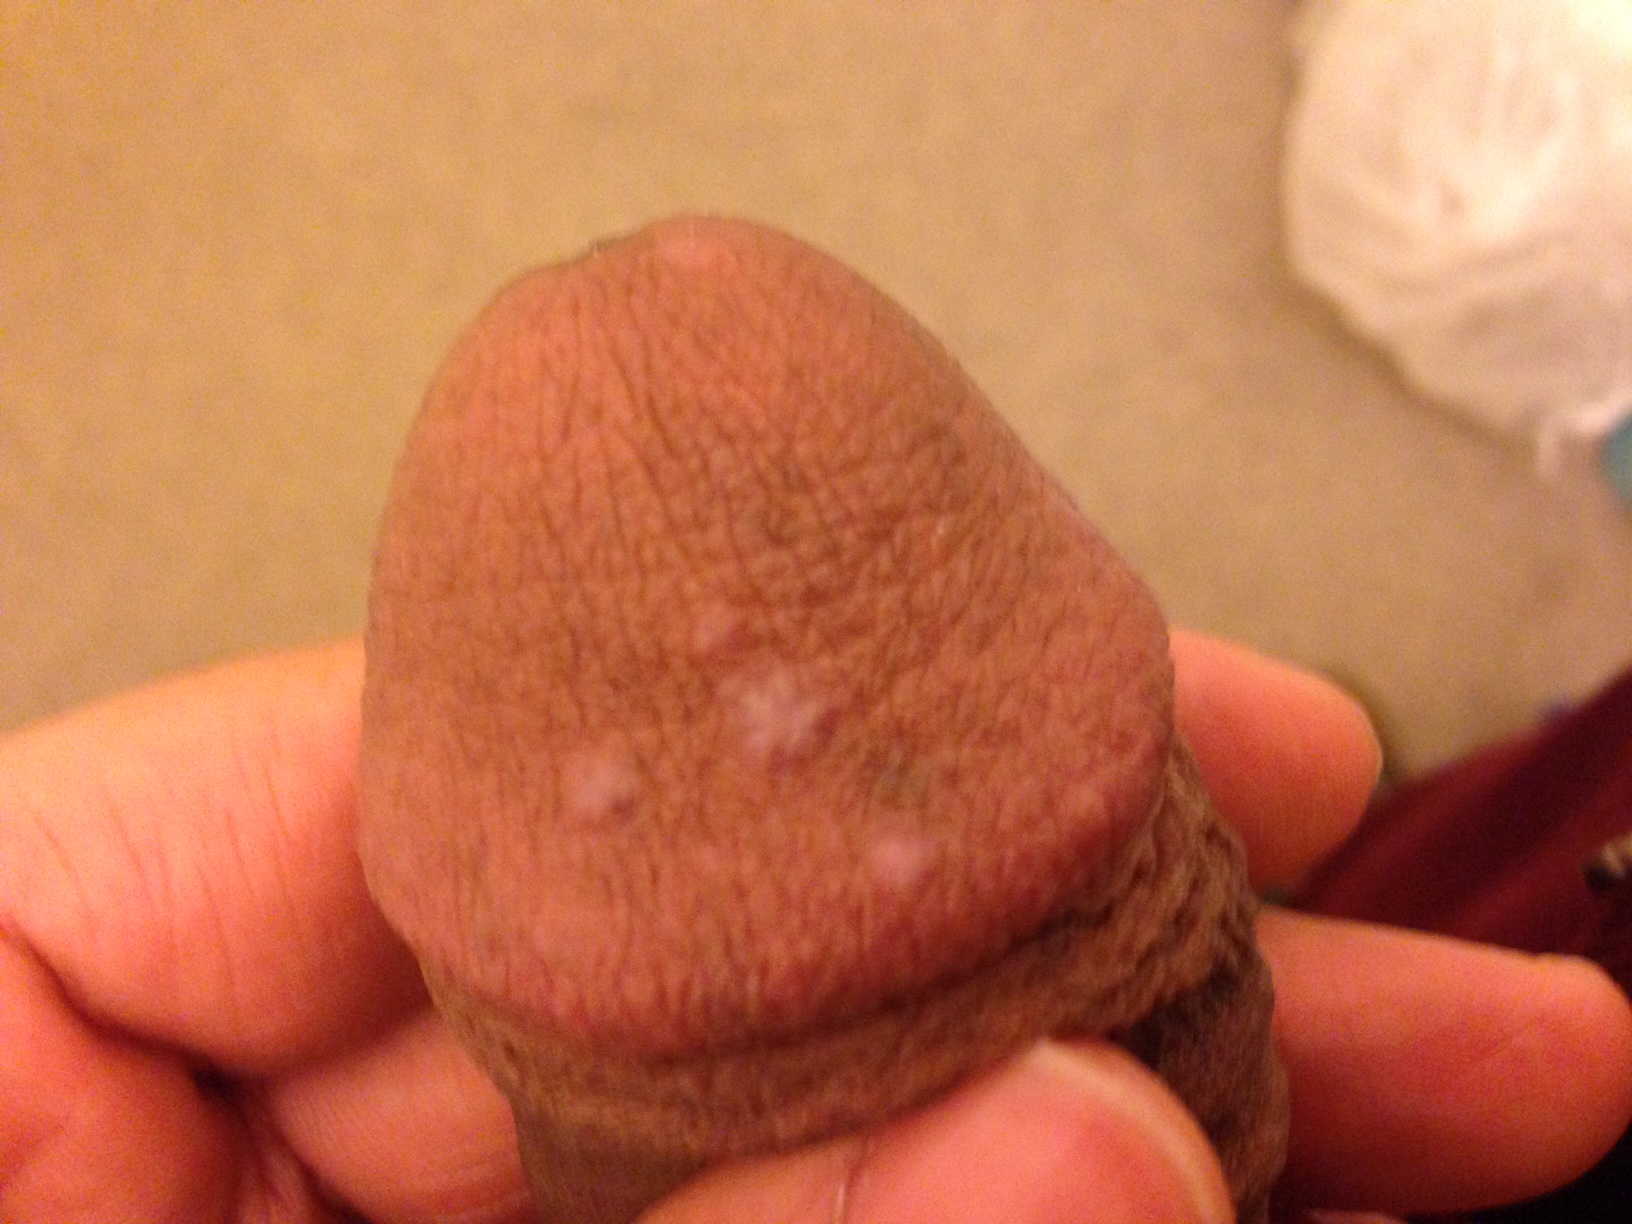 sore and spotty penis after sex